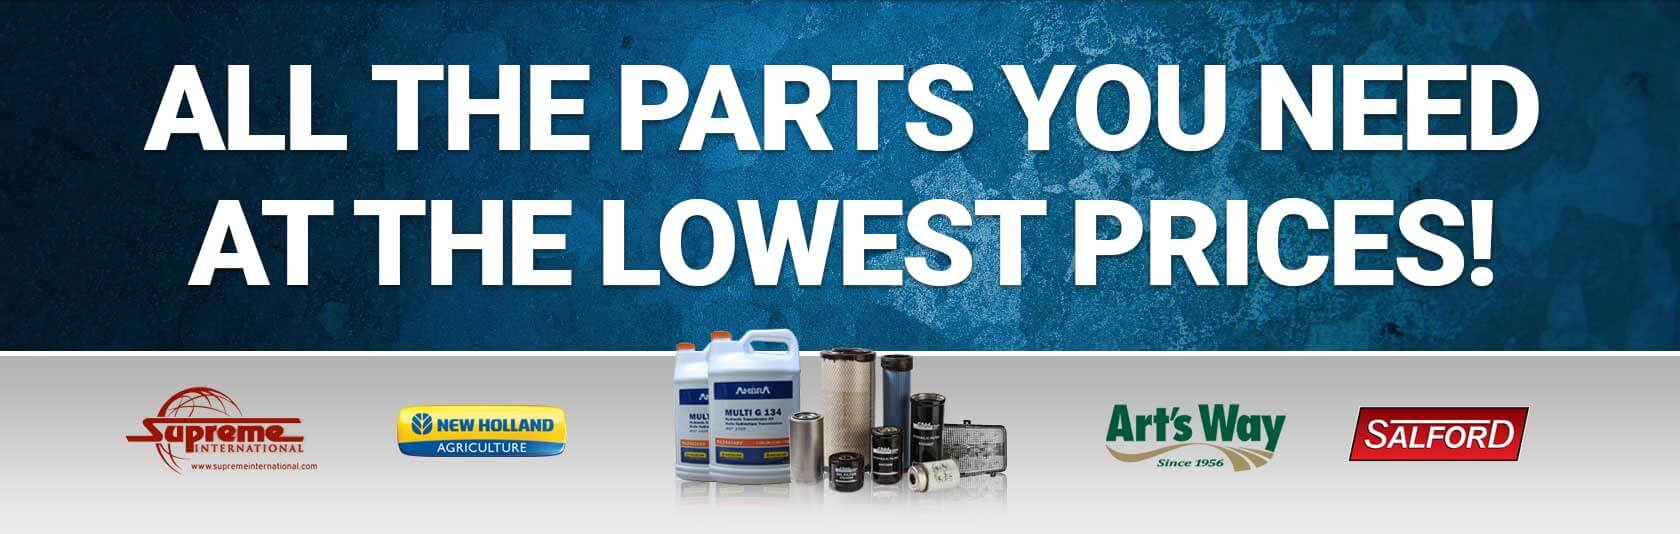 All the parts you need at the prices you want here at Intermountain New Holland!